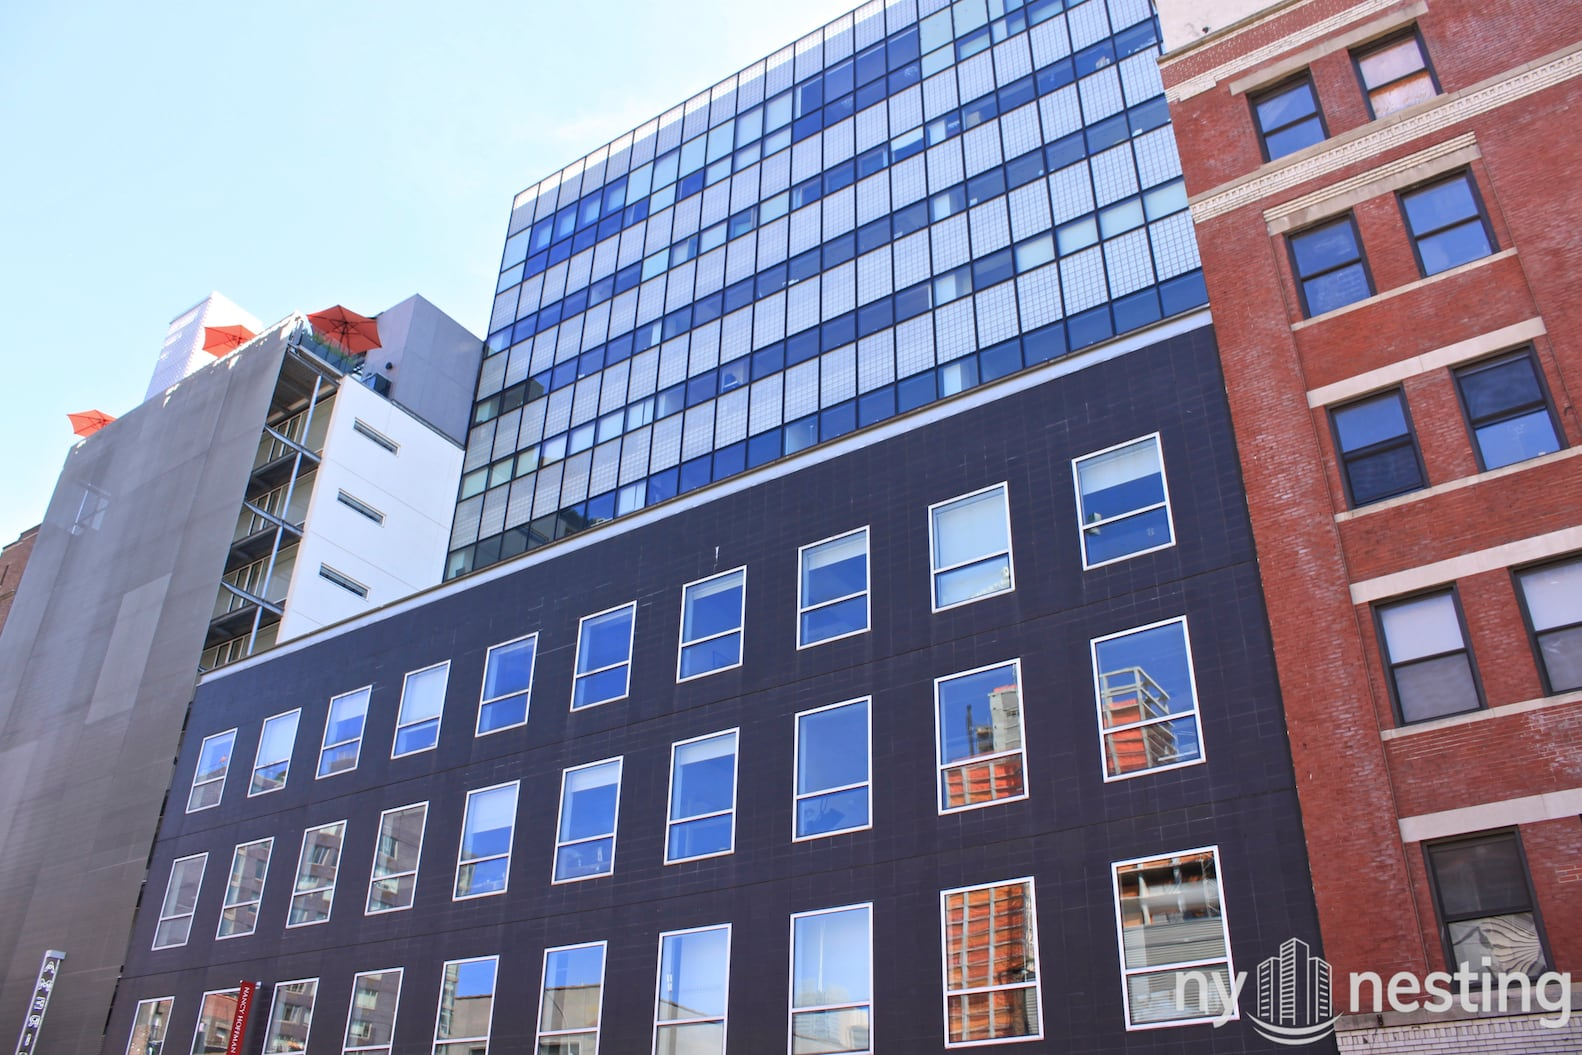 520 west 27th street chelsea manhattan scout for West 27th street nyc